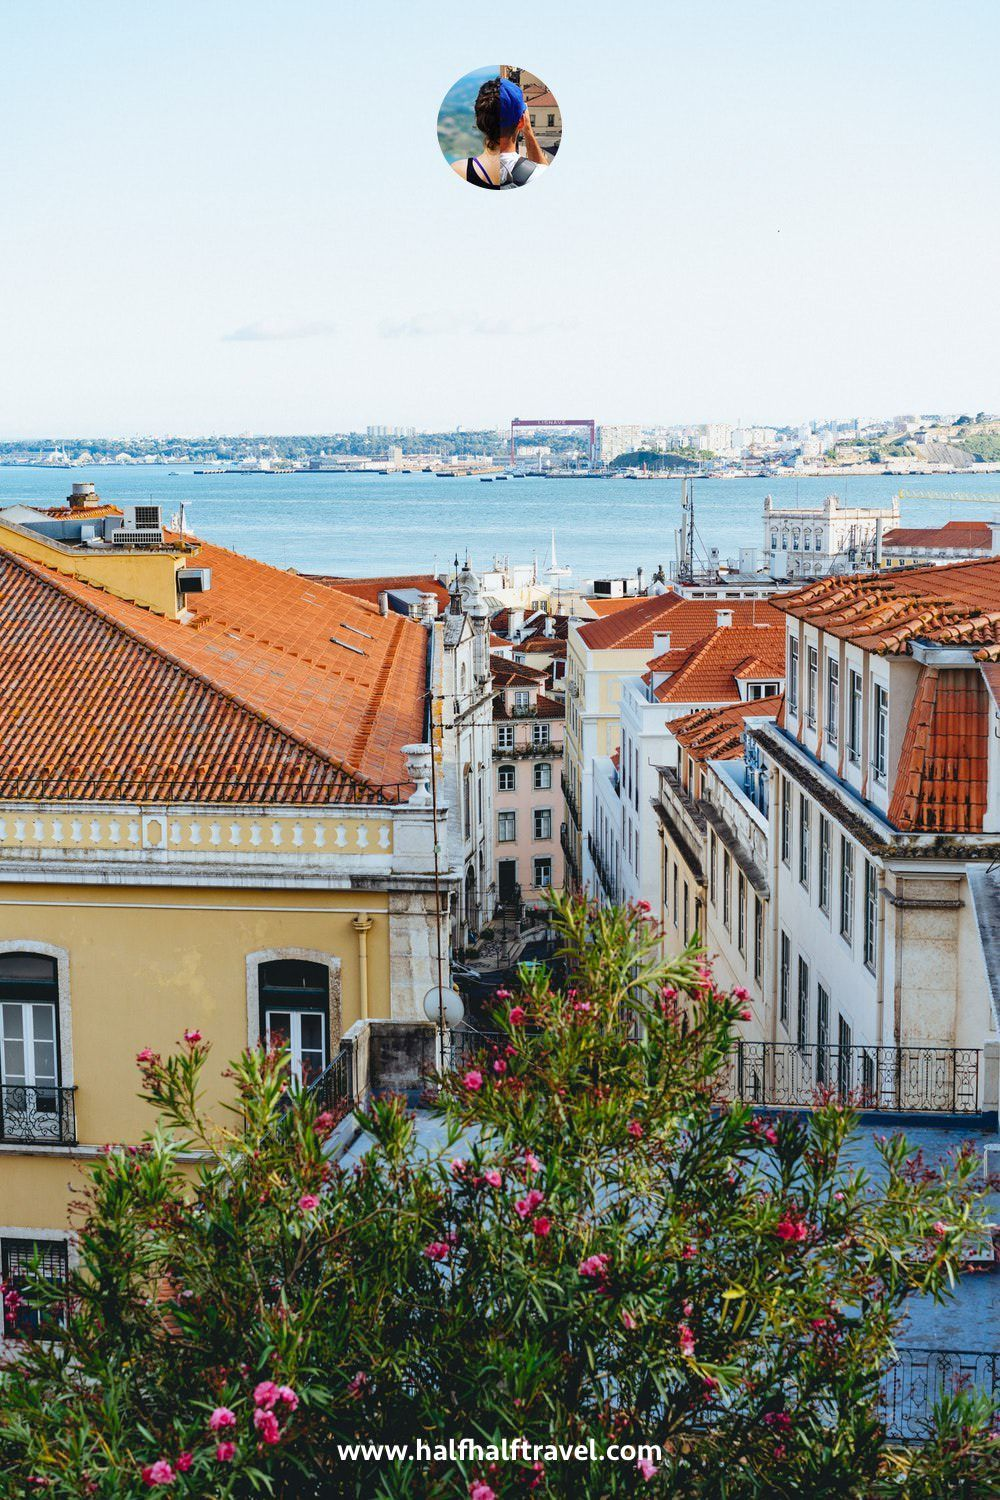 Gallery of Places for Photography Spots in Lisbon